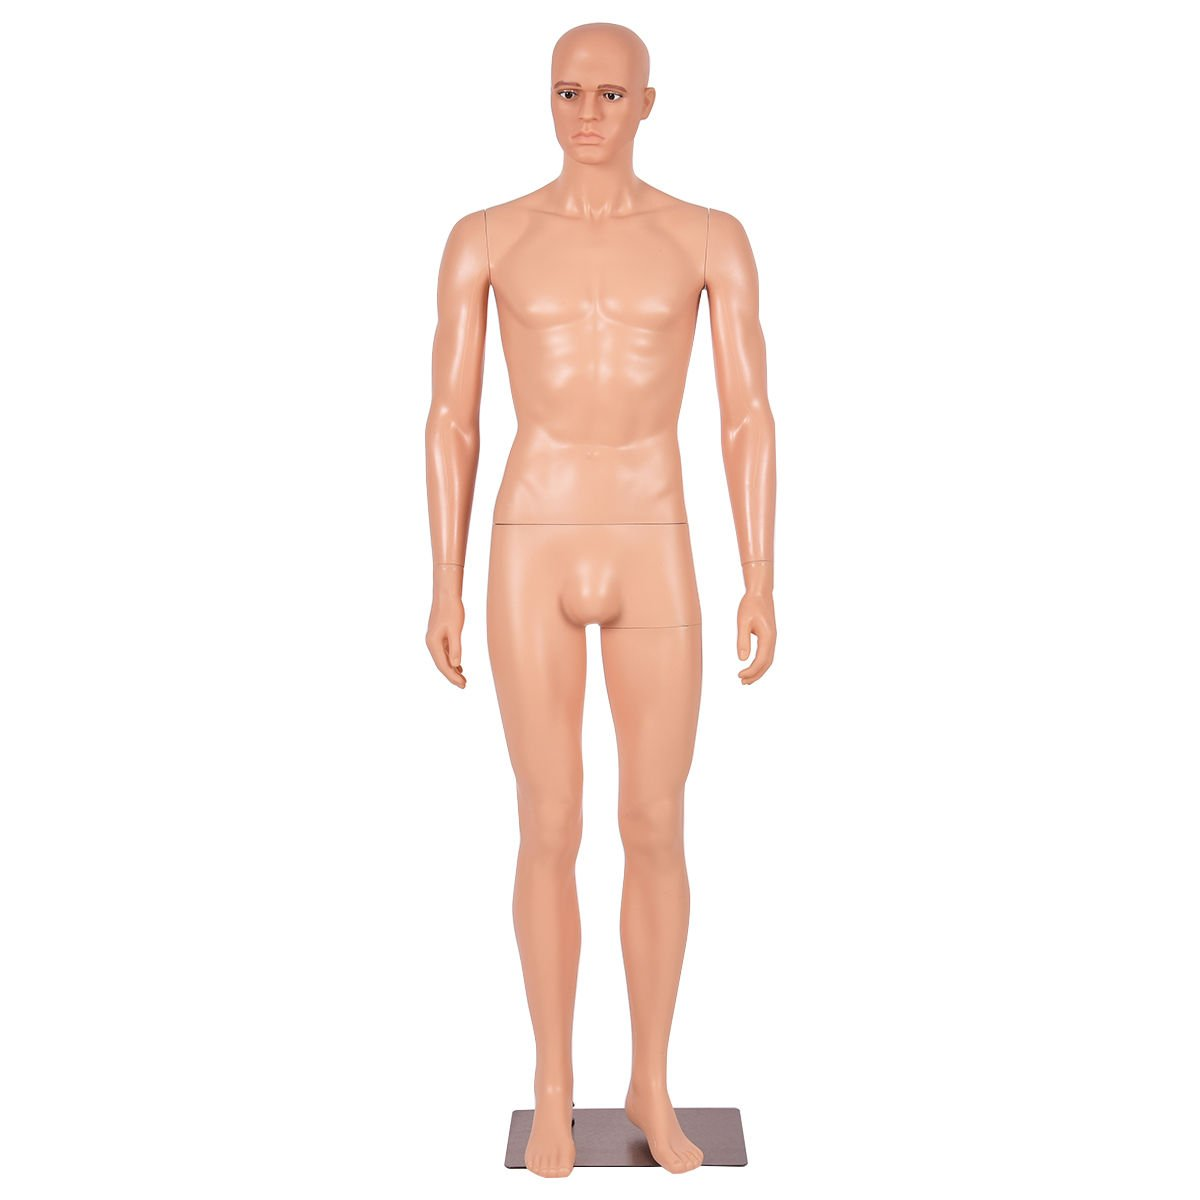 [Waller PAA] 6 FT Male Mannequin Make-up Manikin Metal Stand Plastic Full Body Realistic New